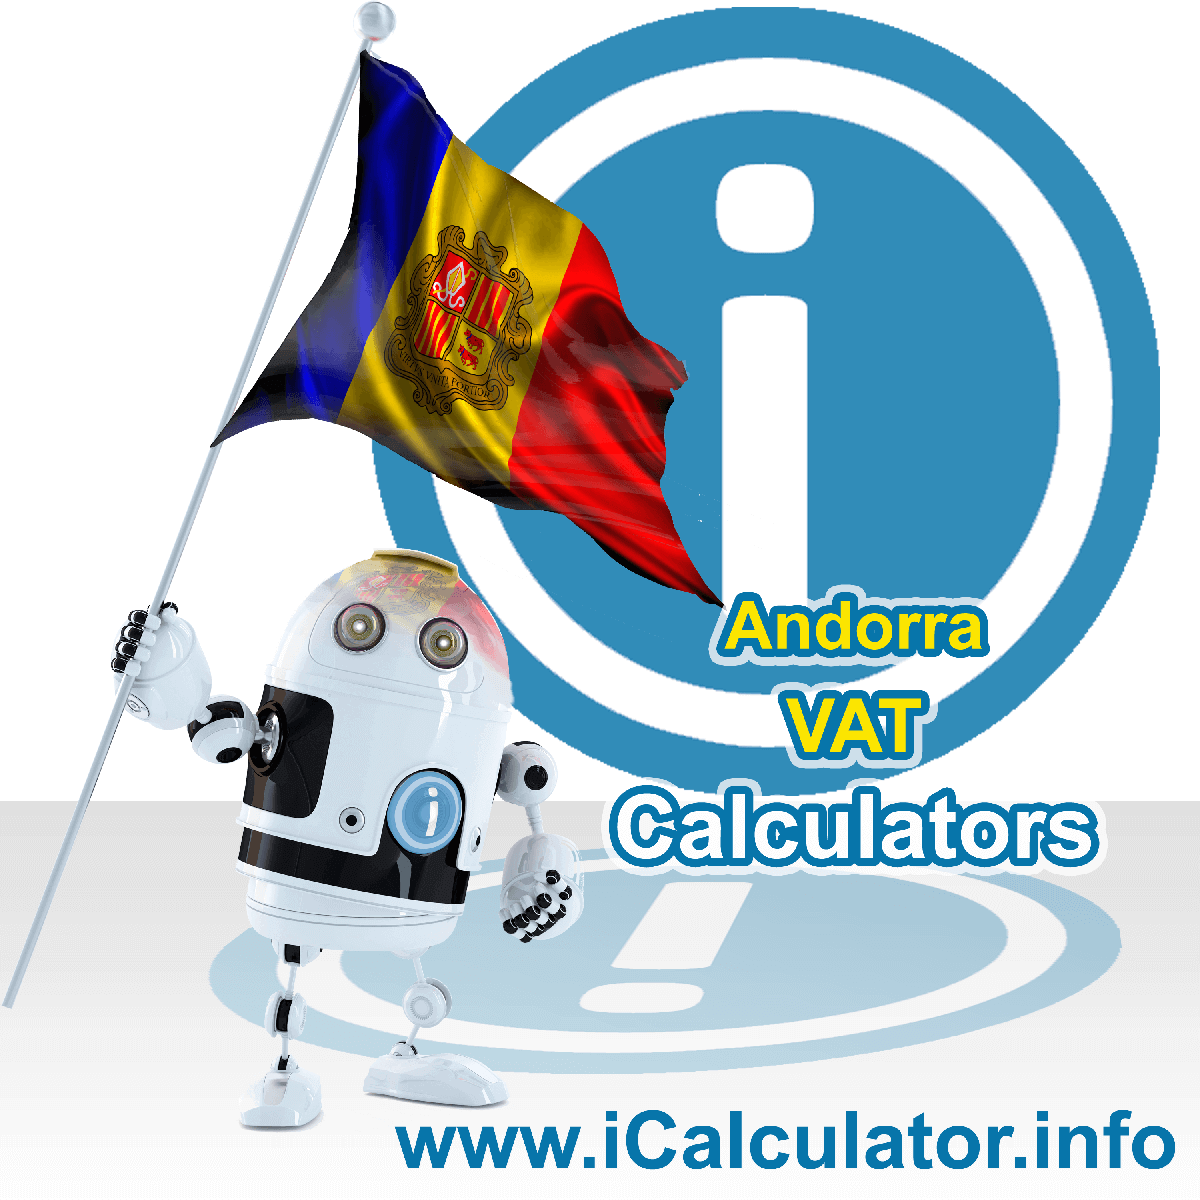 Andorra VAT Calculator. This image shows the Andorra flag and information relating to the VAT formula used for calculating Value Added Tax in Andorra using the Andorra VAT Calculator in 2020